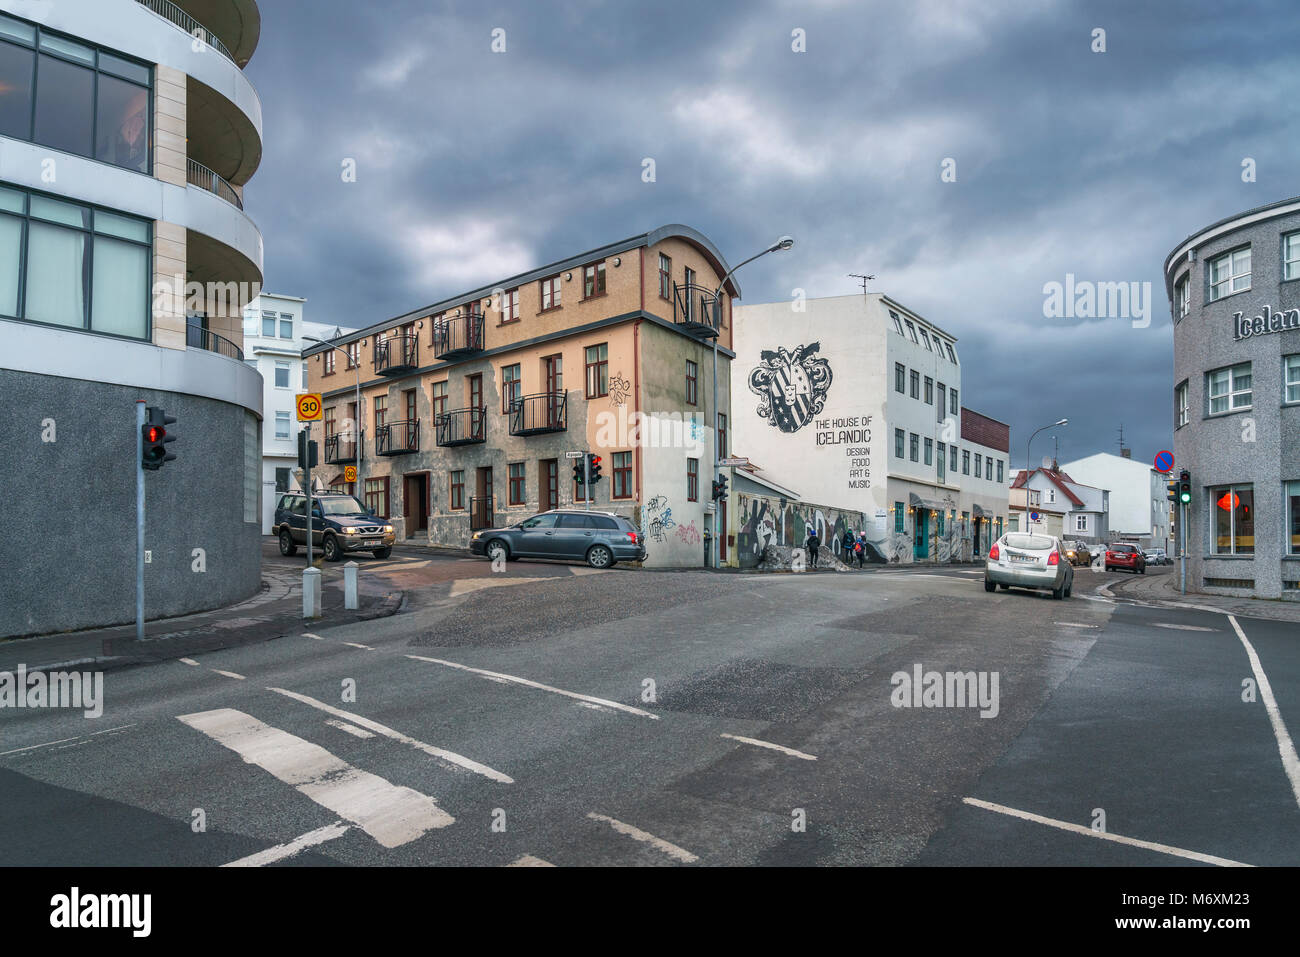 Empty street with older buildings, Reykjavik, Iceland - Stock Image